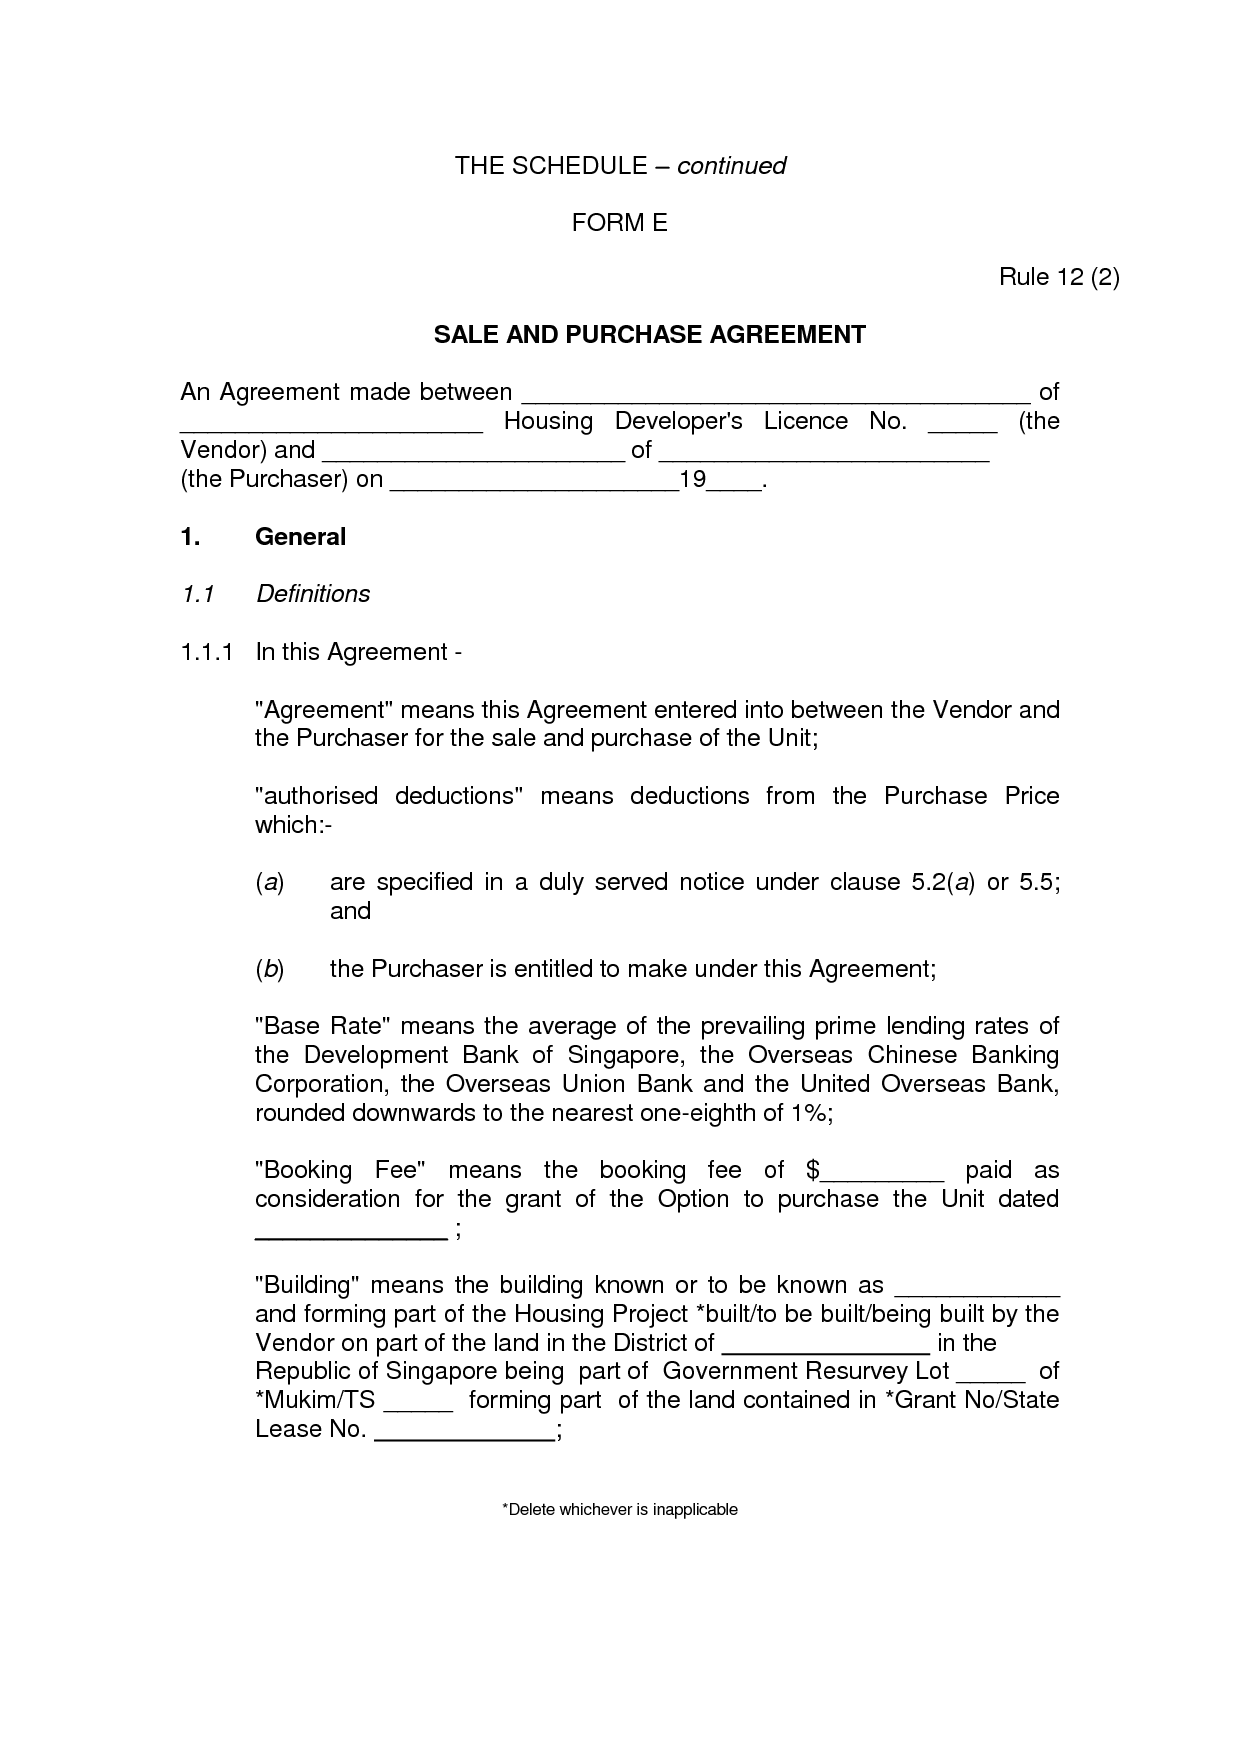 private party car purchase agreement simple by qeb64120 simple